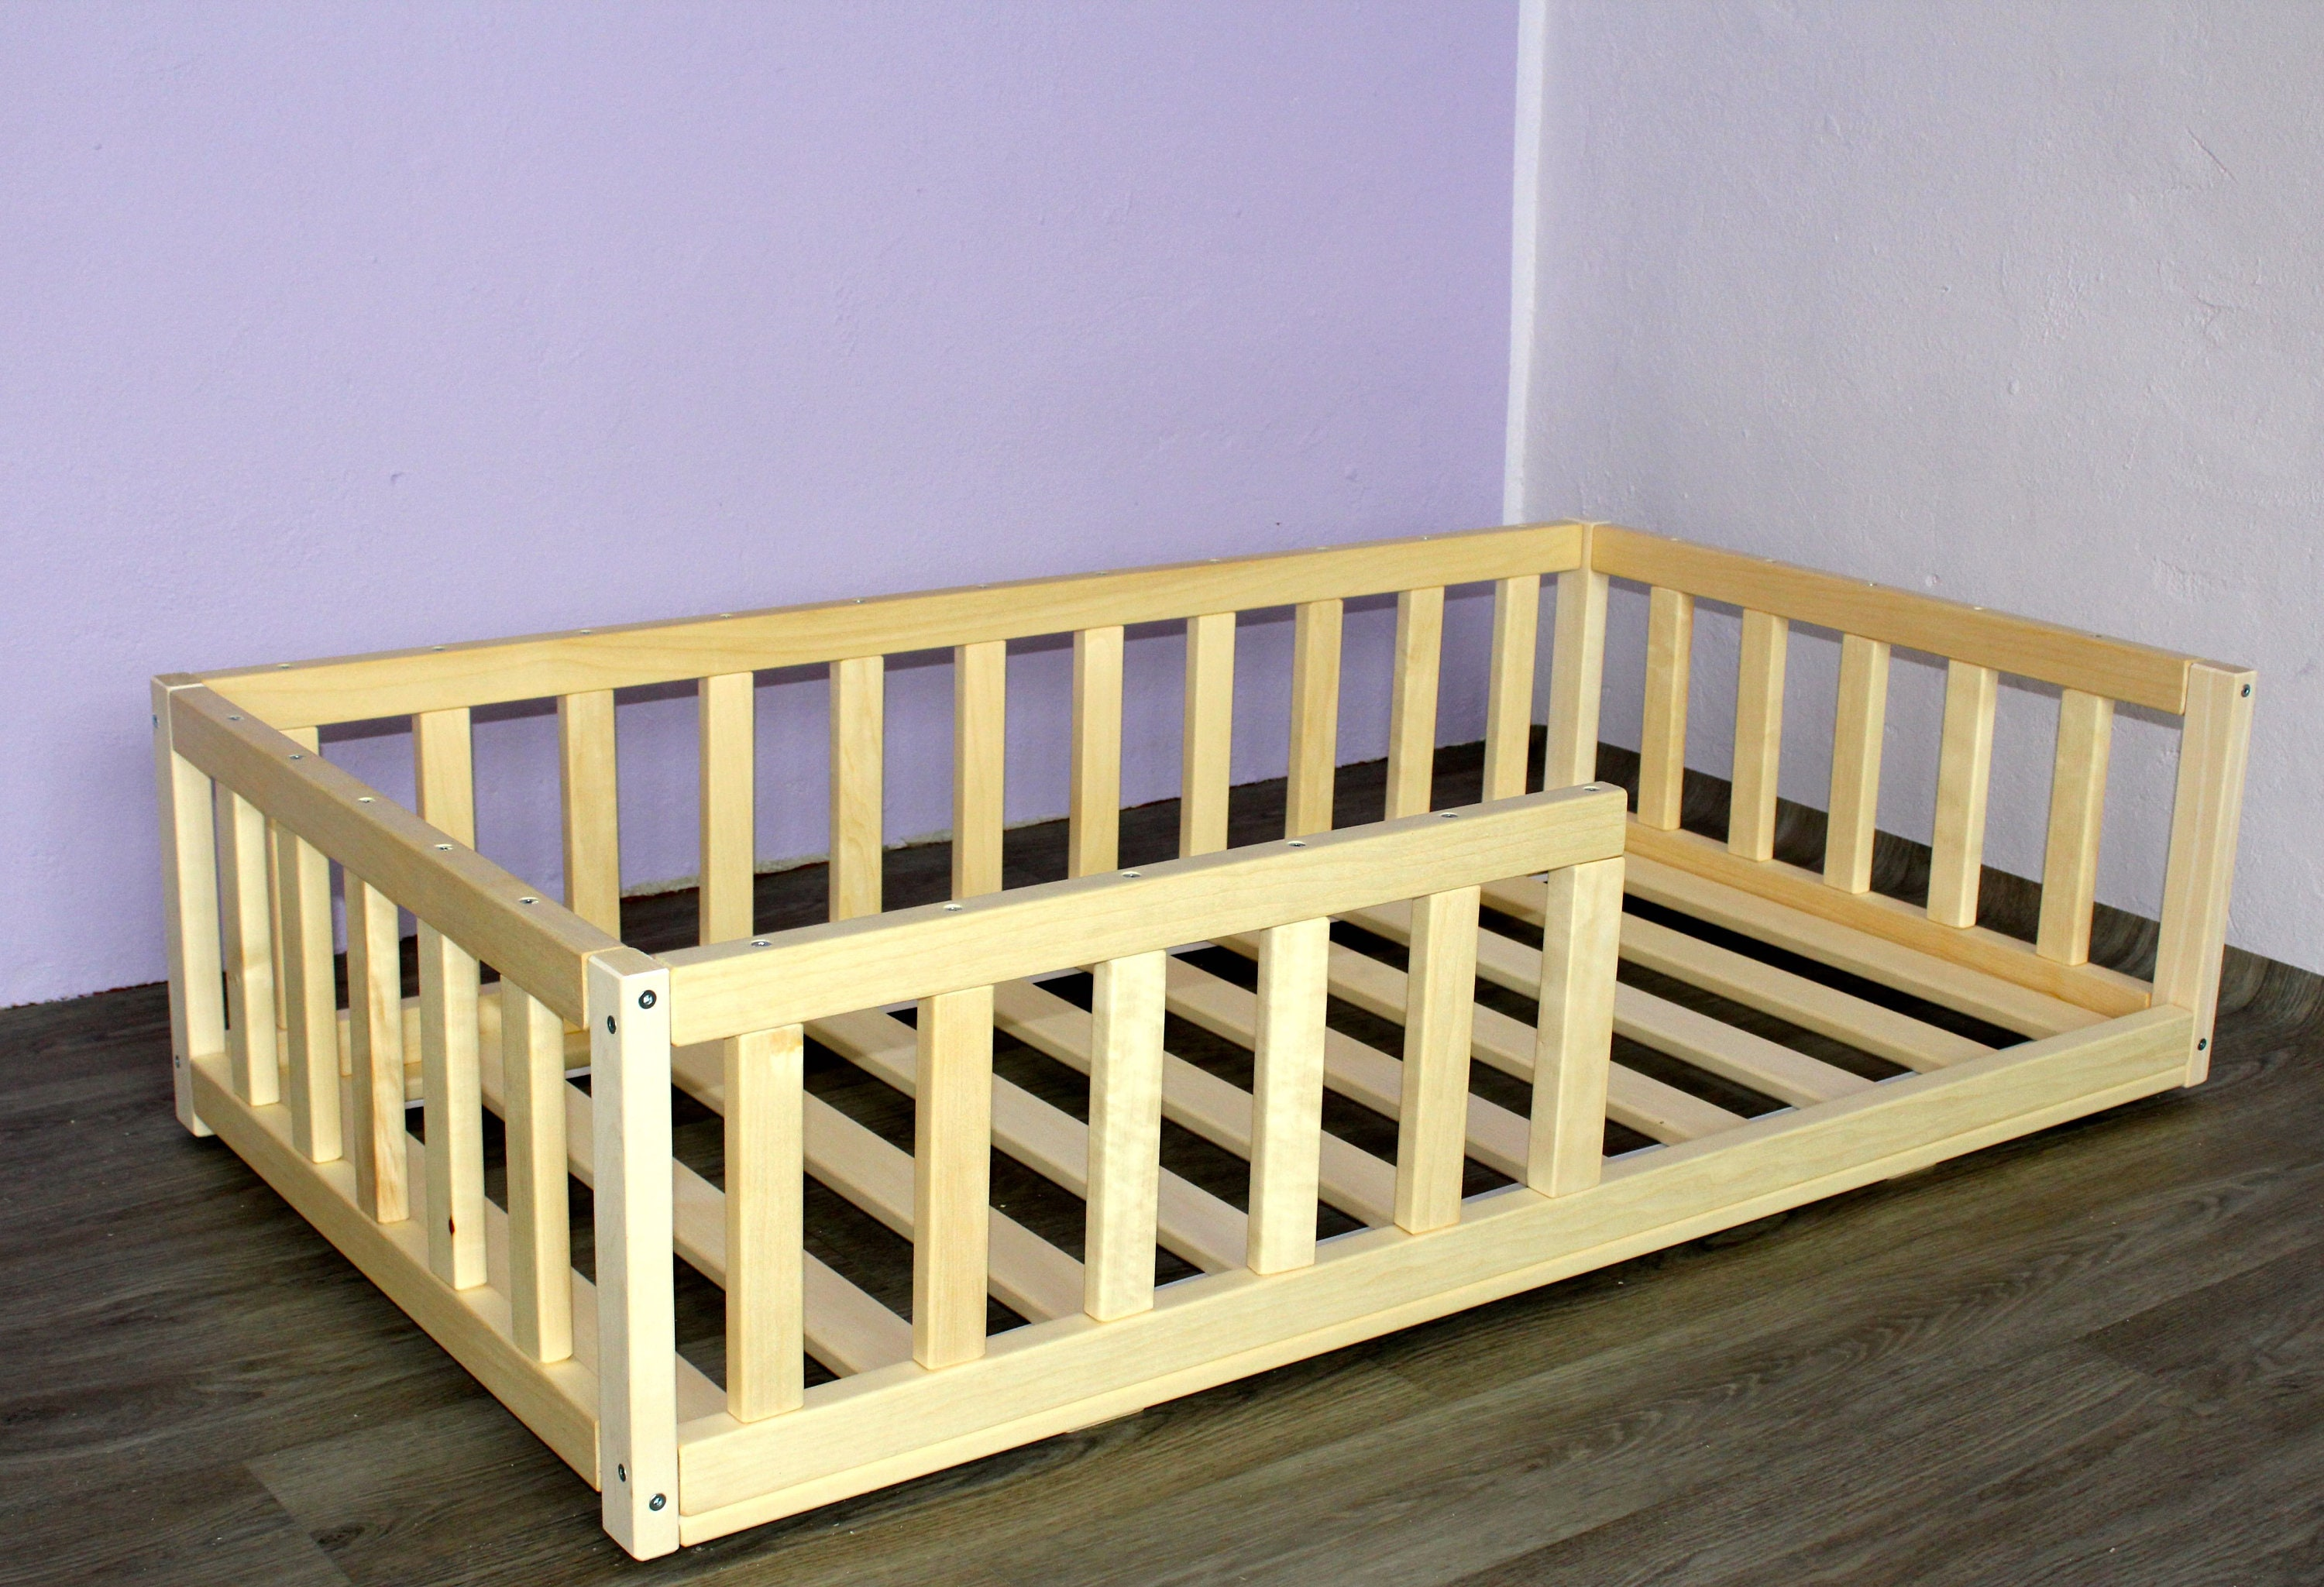 Floor Bed With Slats Toddler Bed Nursery Crib